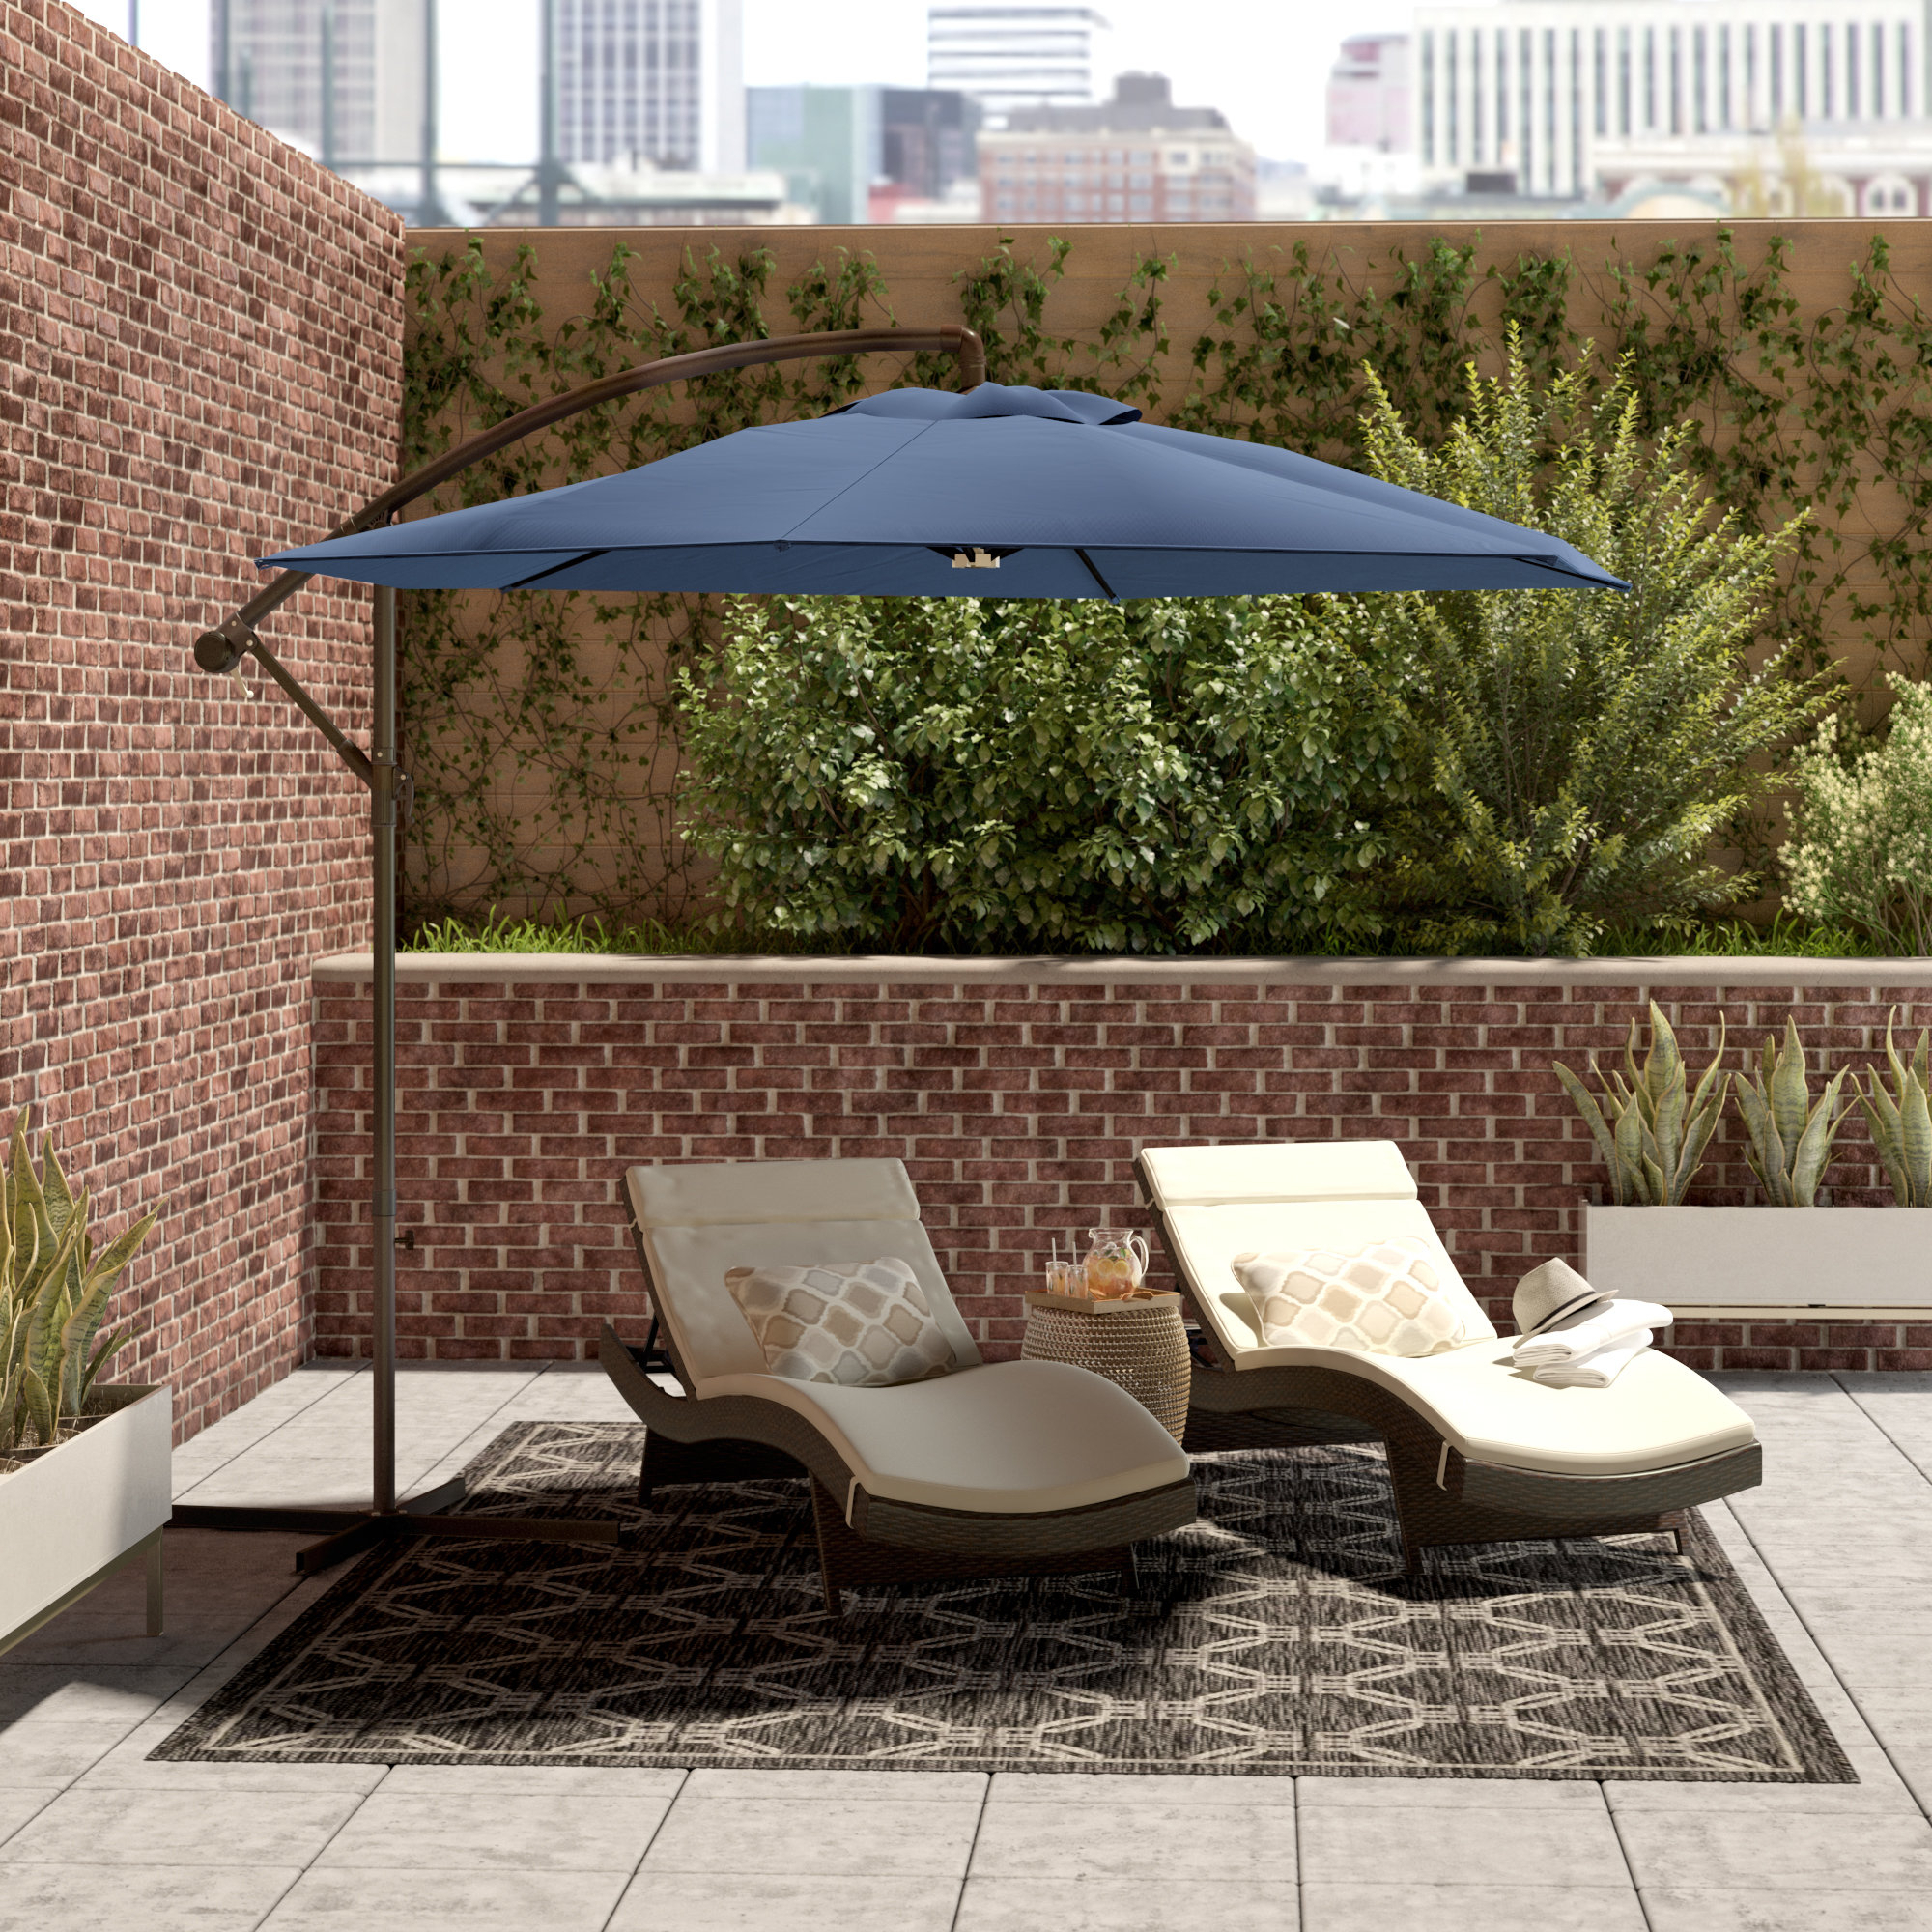 Well Liked Amaris Cantilever Umbrellas Throughout 10' Cantilever Umbrella (View 19 of 20)